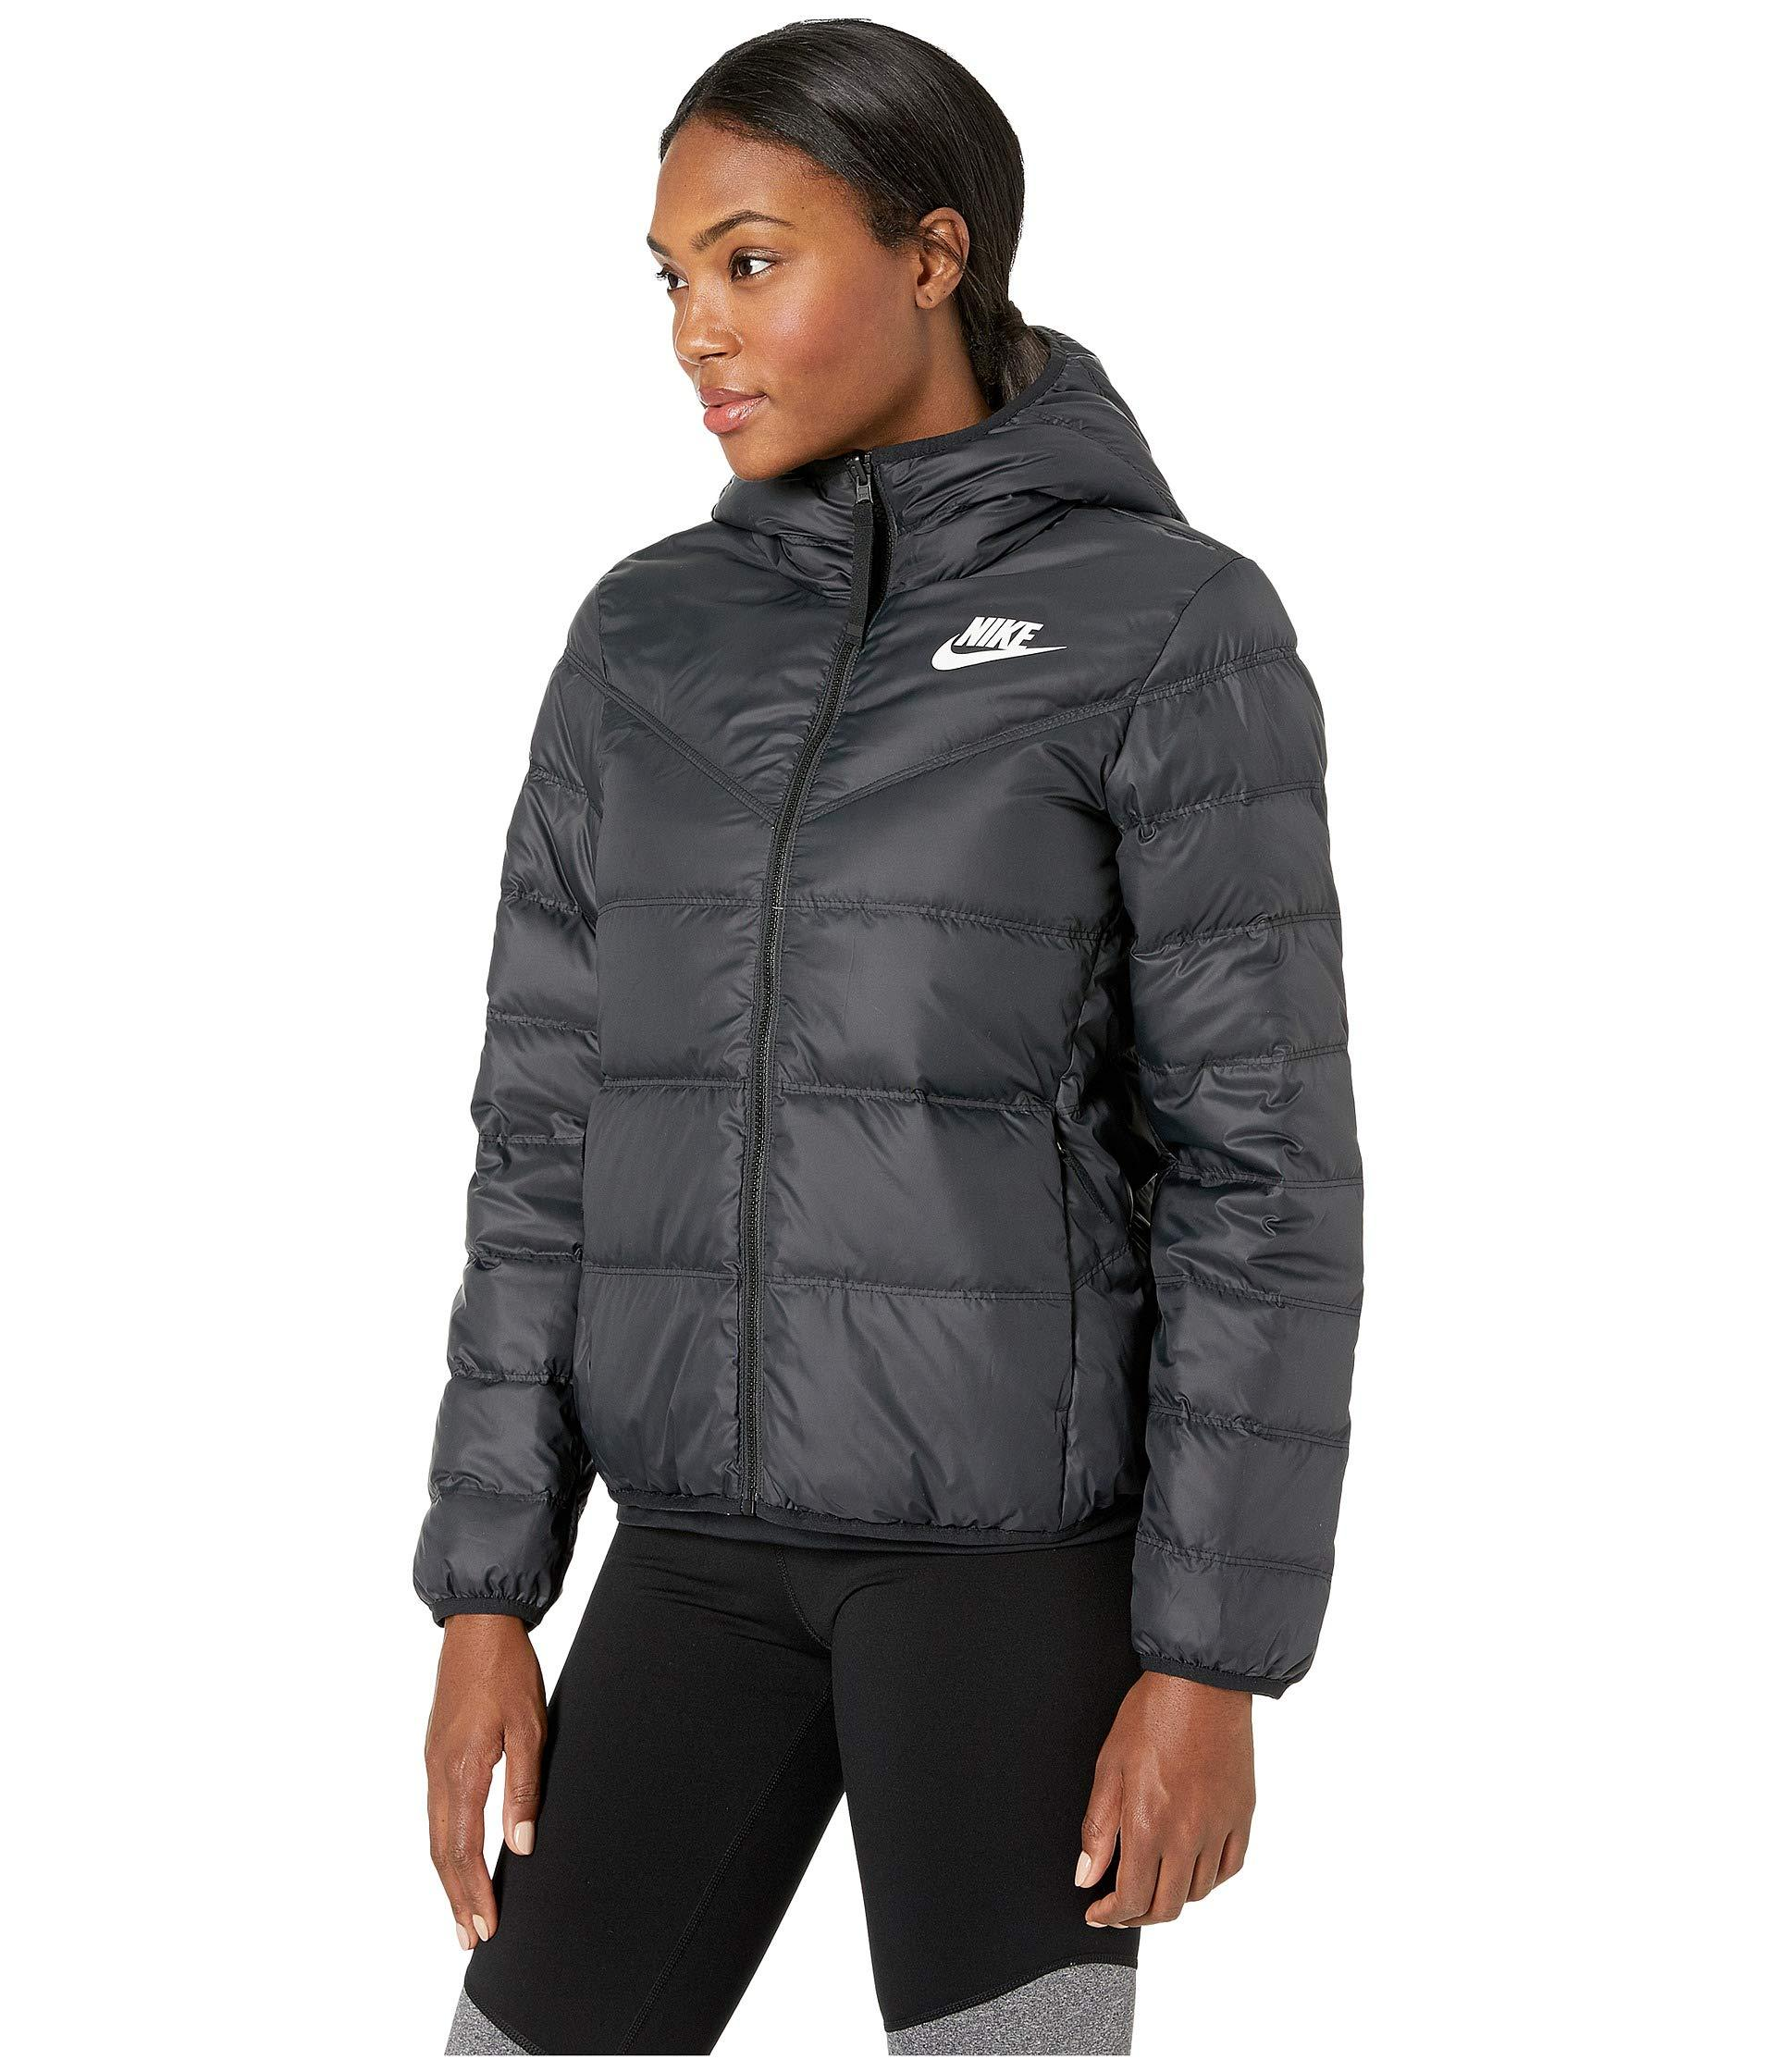 692dcacb2bfb Lyst - Nike Sportswear Windrunner Down Fill Jacket Reversible in Black -  Save 31%